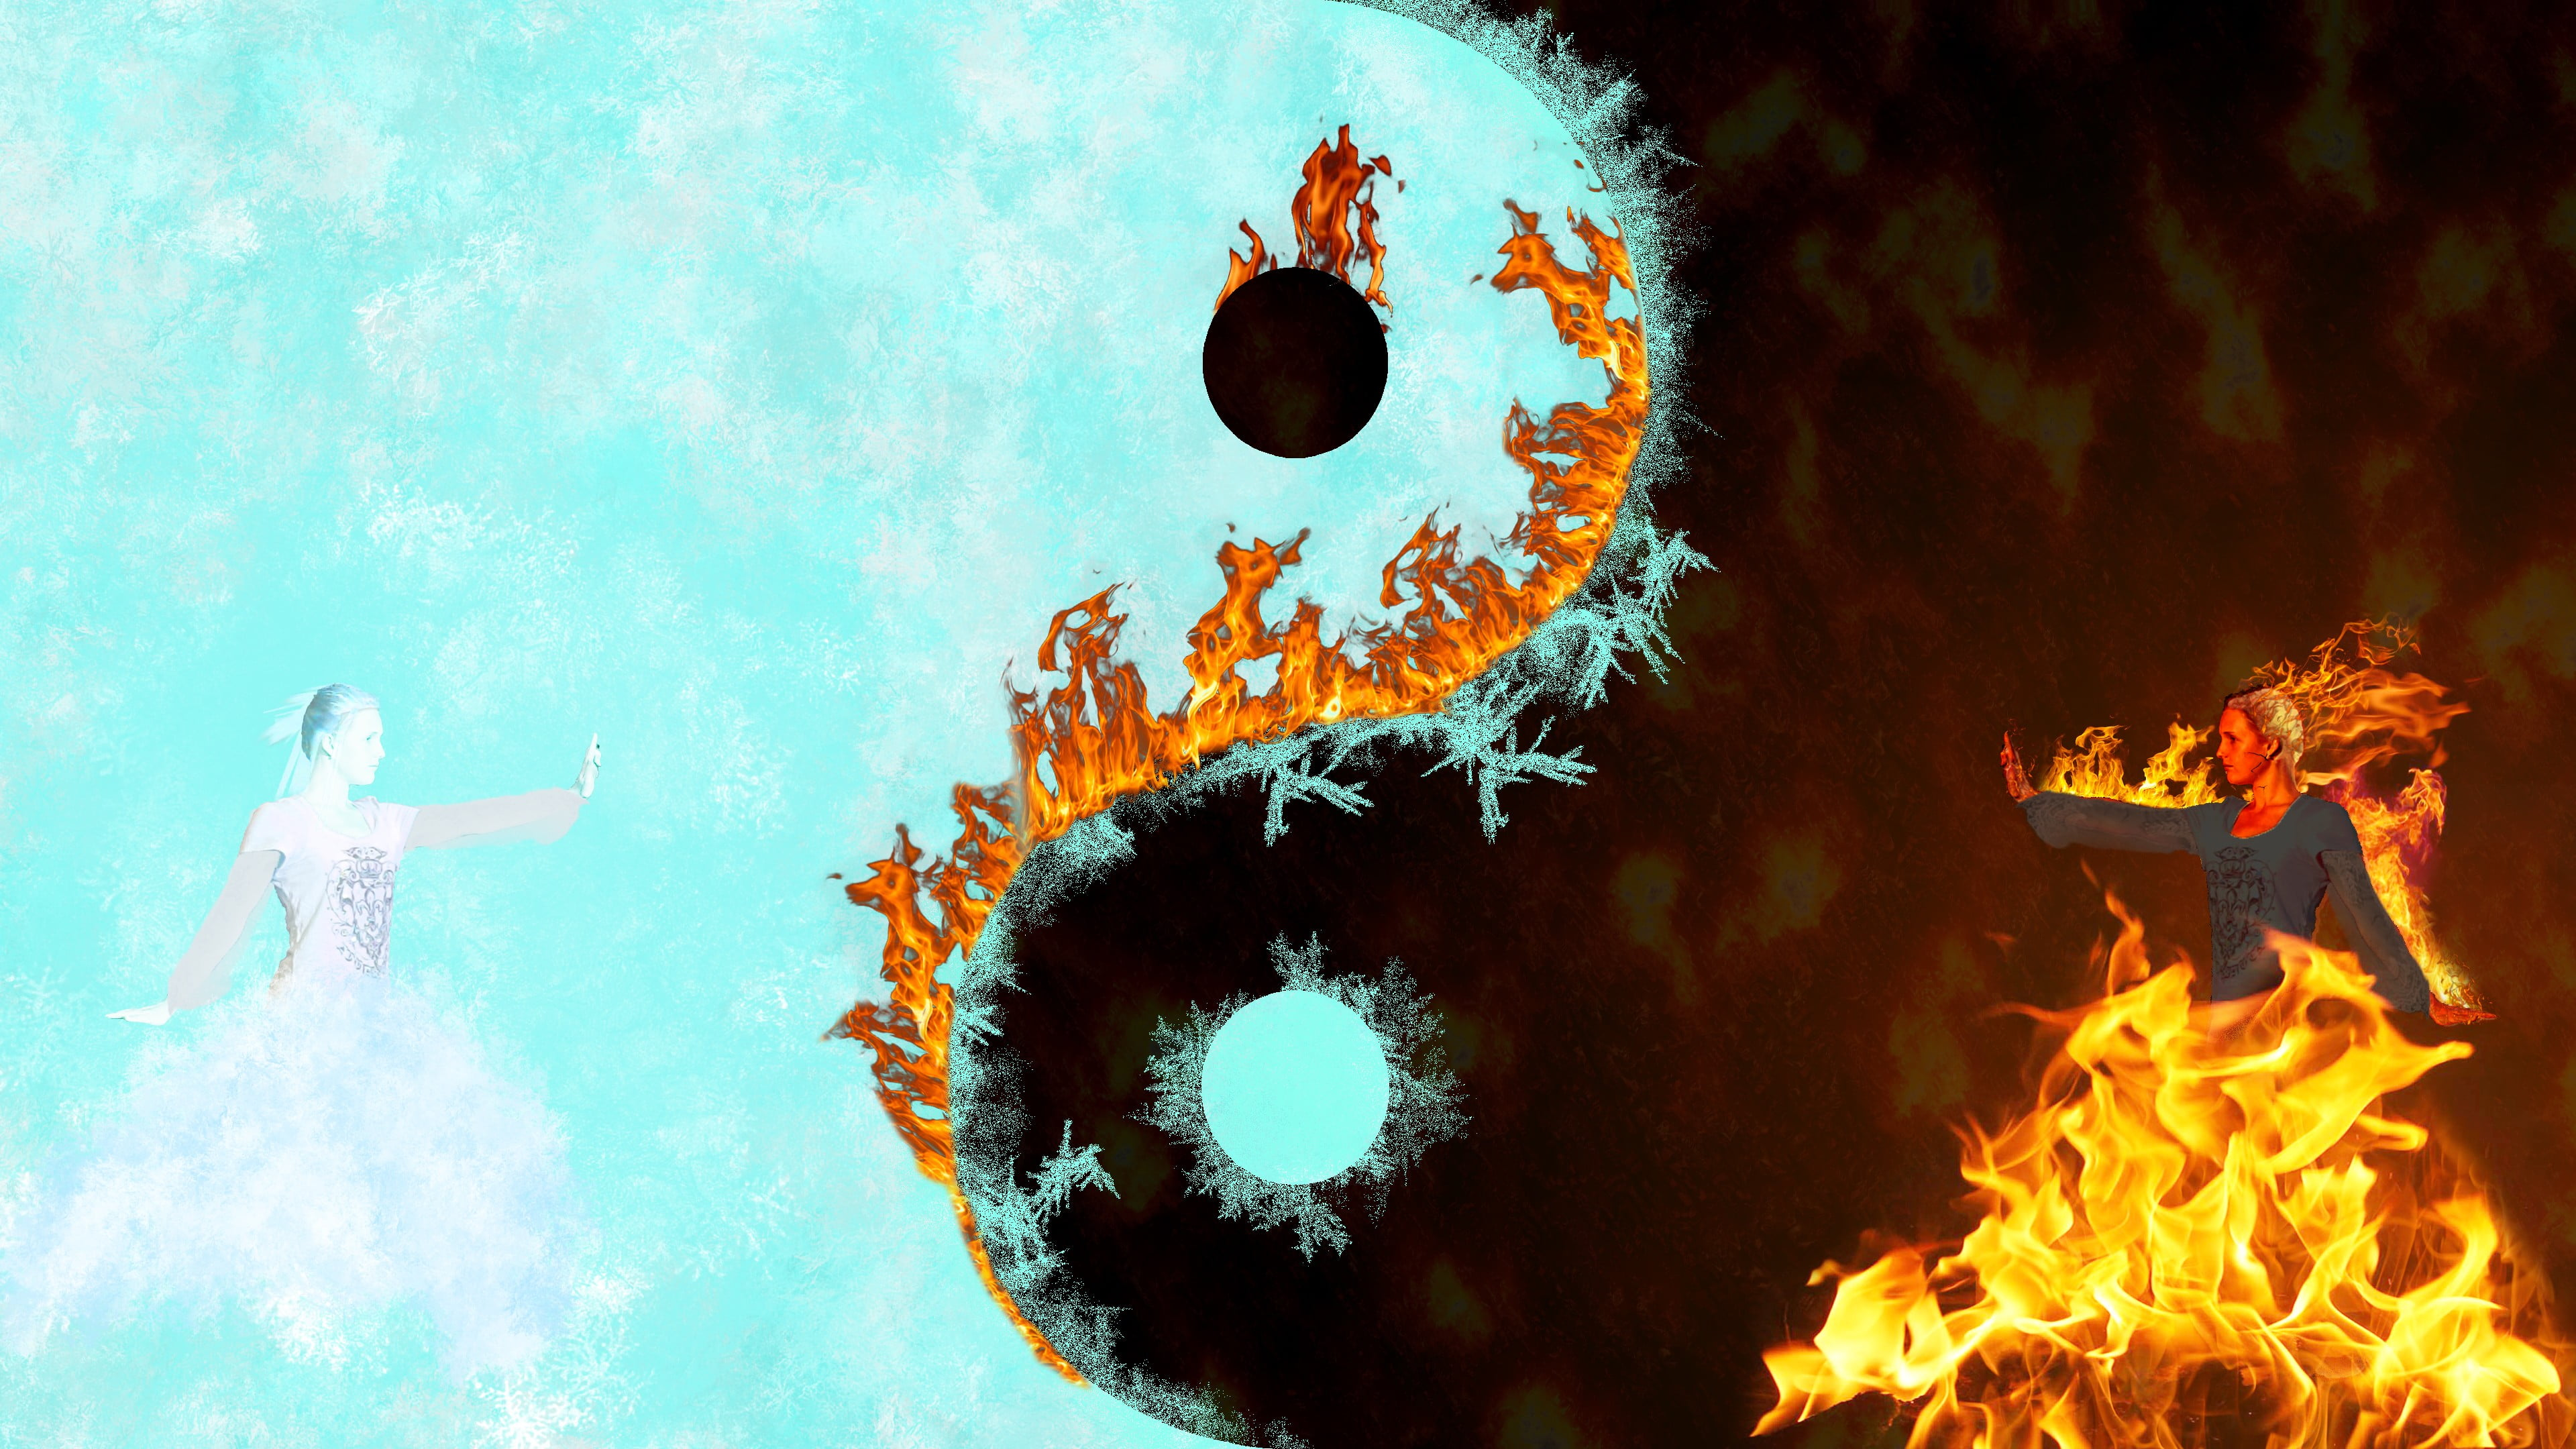 ying yang pics, tiger and dragon wallpaper